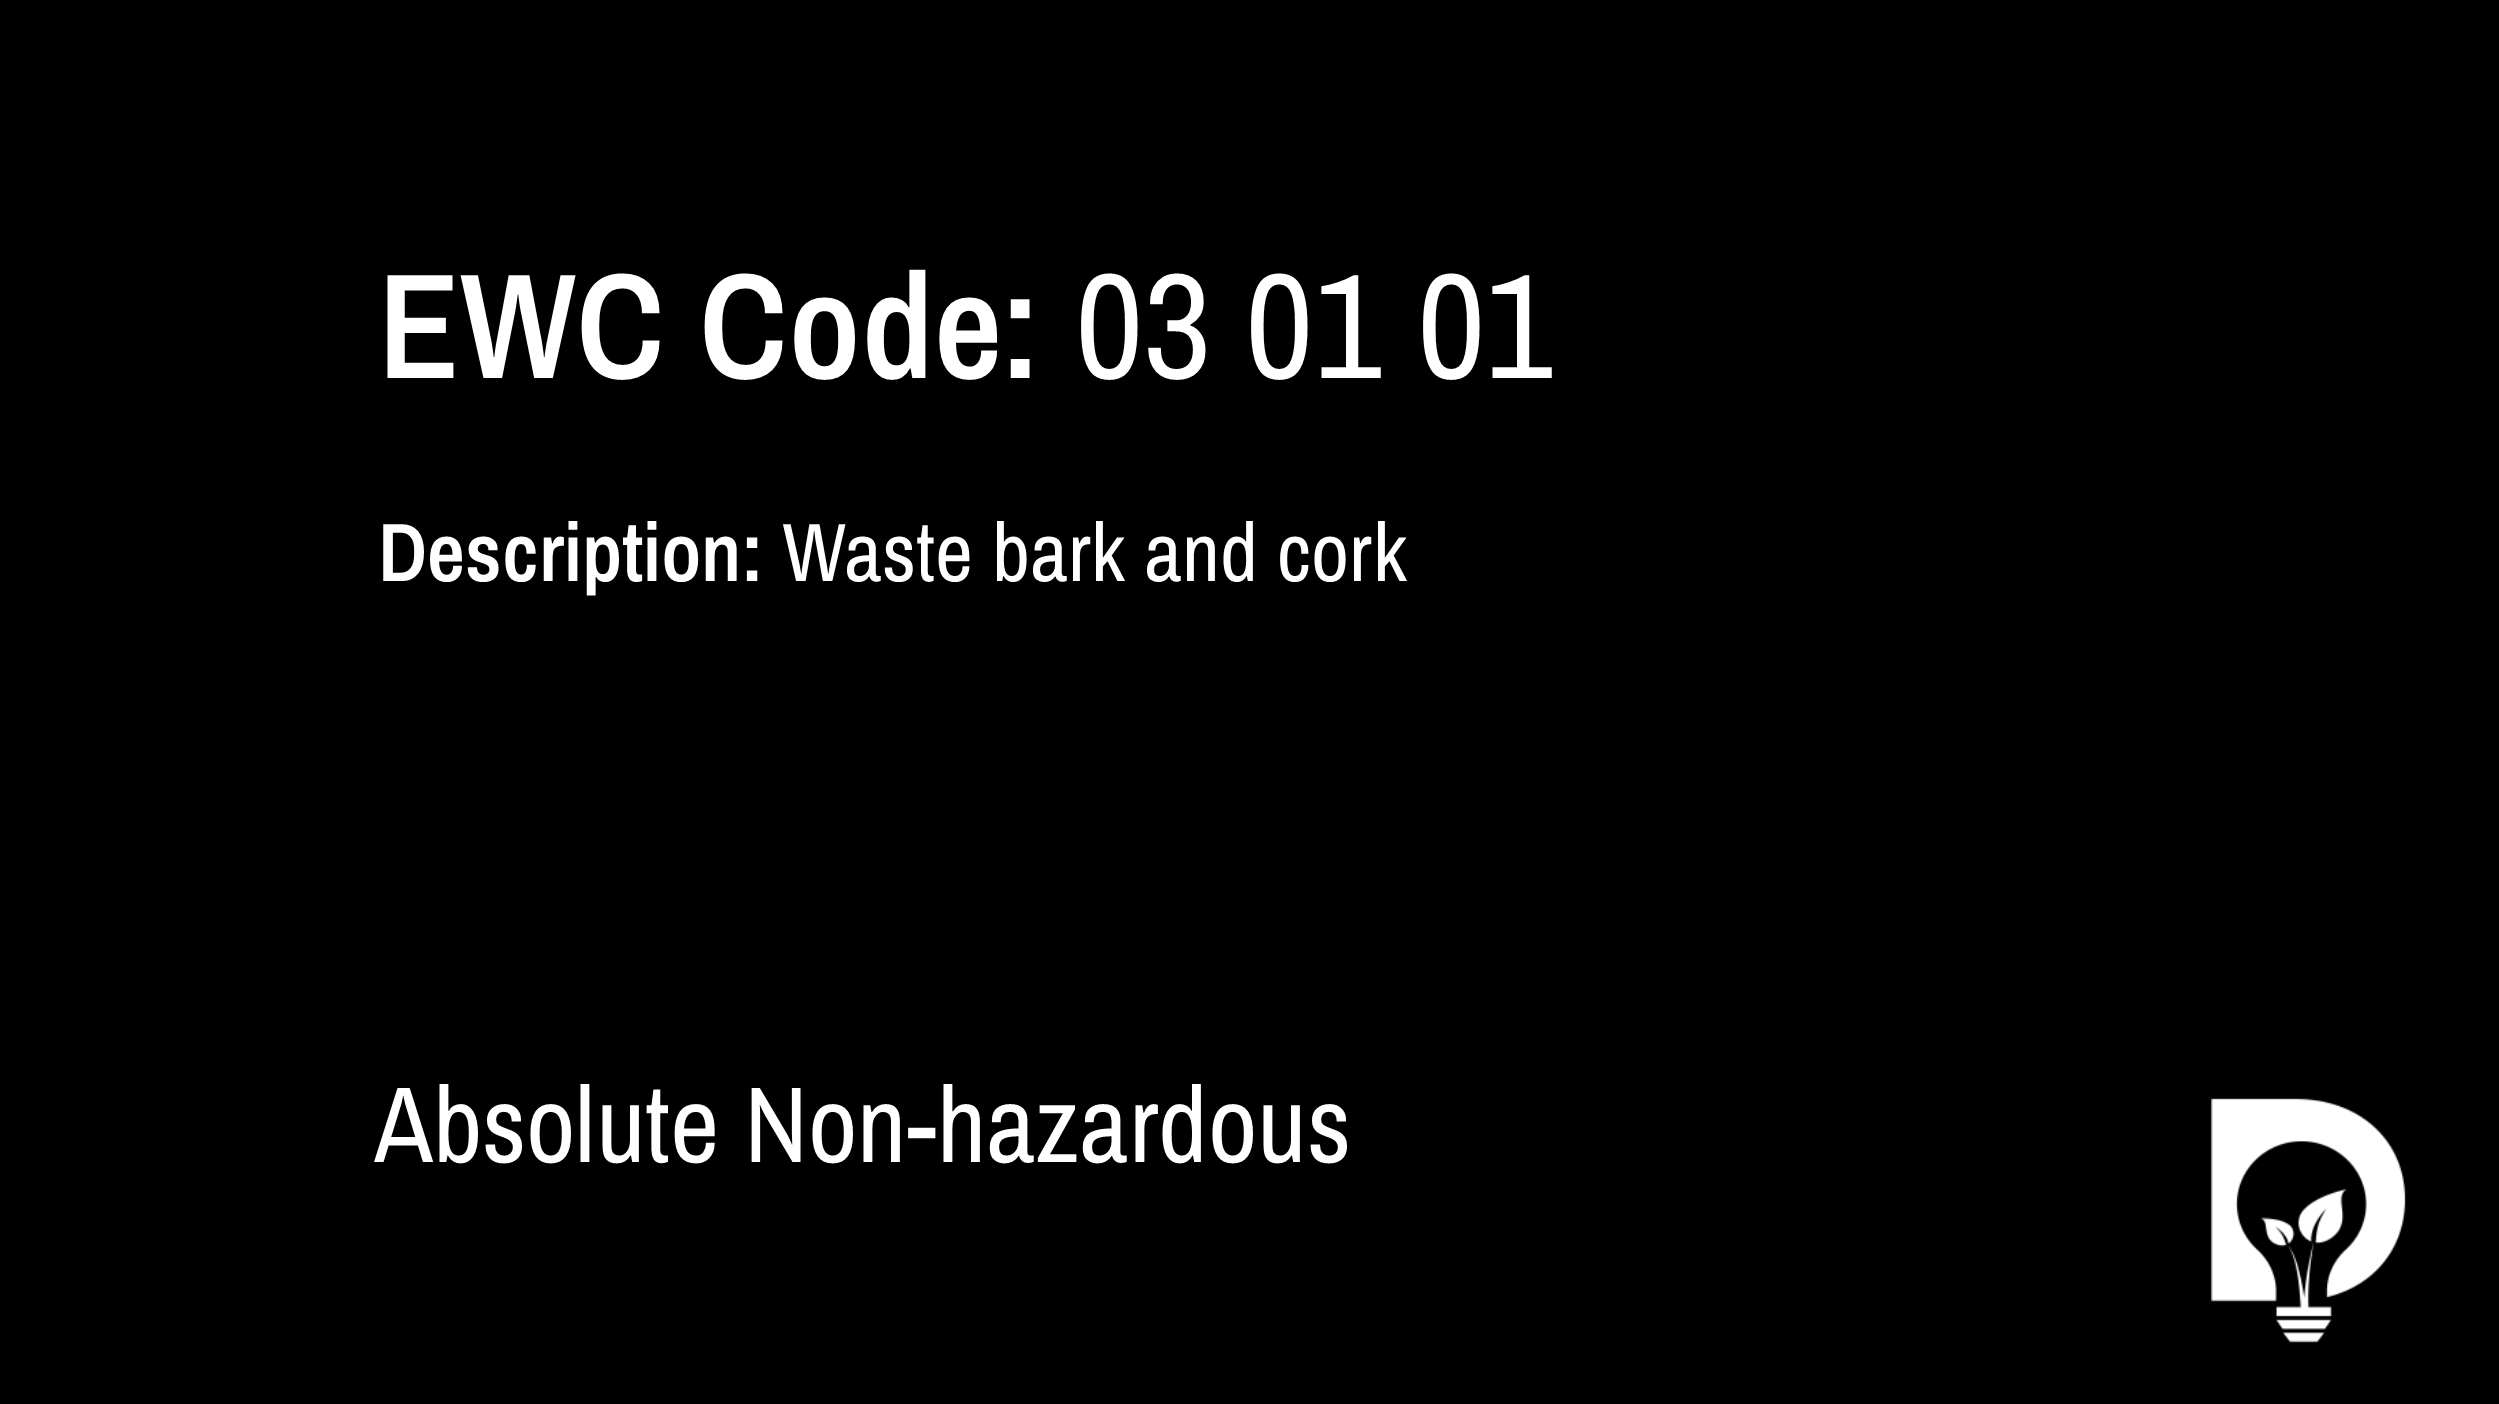 EWC Code: 01 - Waste bark and cork. Type: Absolute Non-hazardous. Image by Dsposal